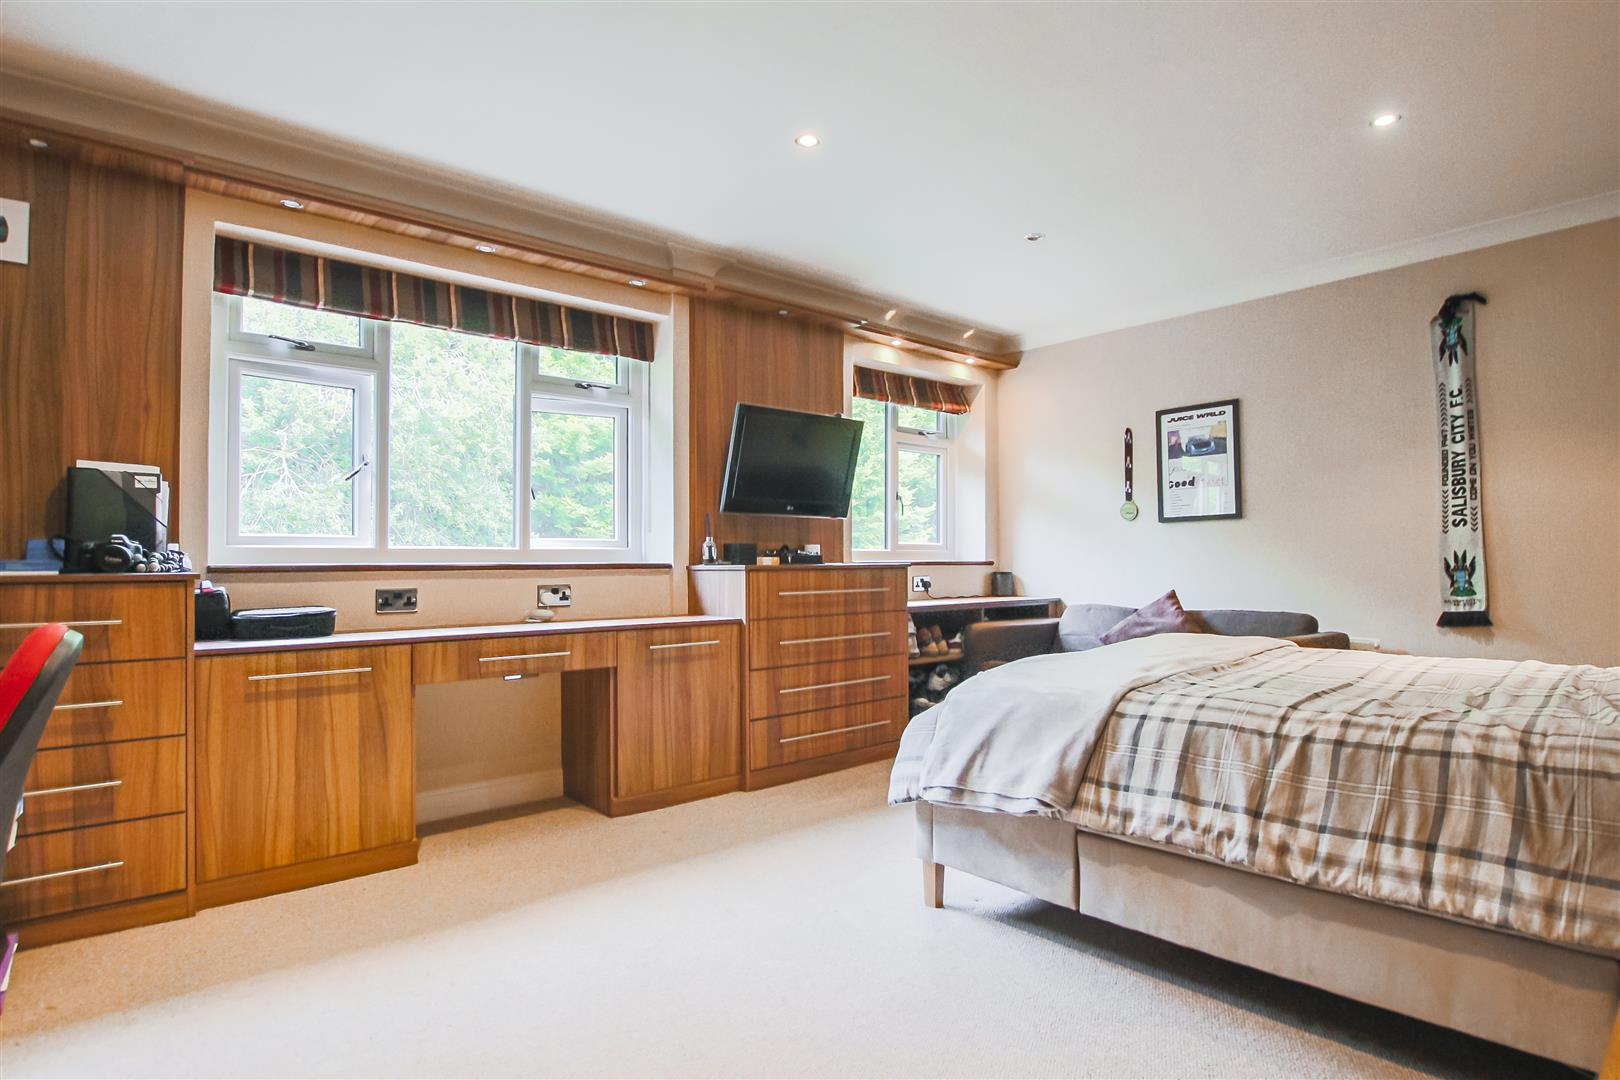 6 Bedroom Detached House For Sale - Bedroom two